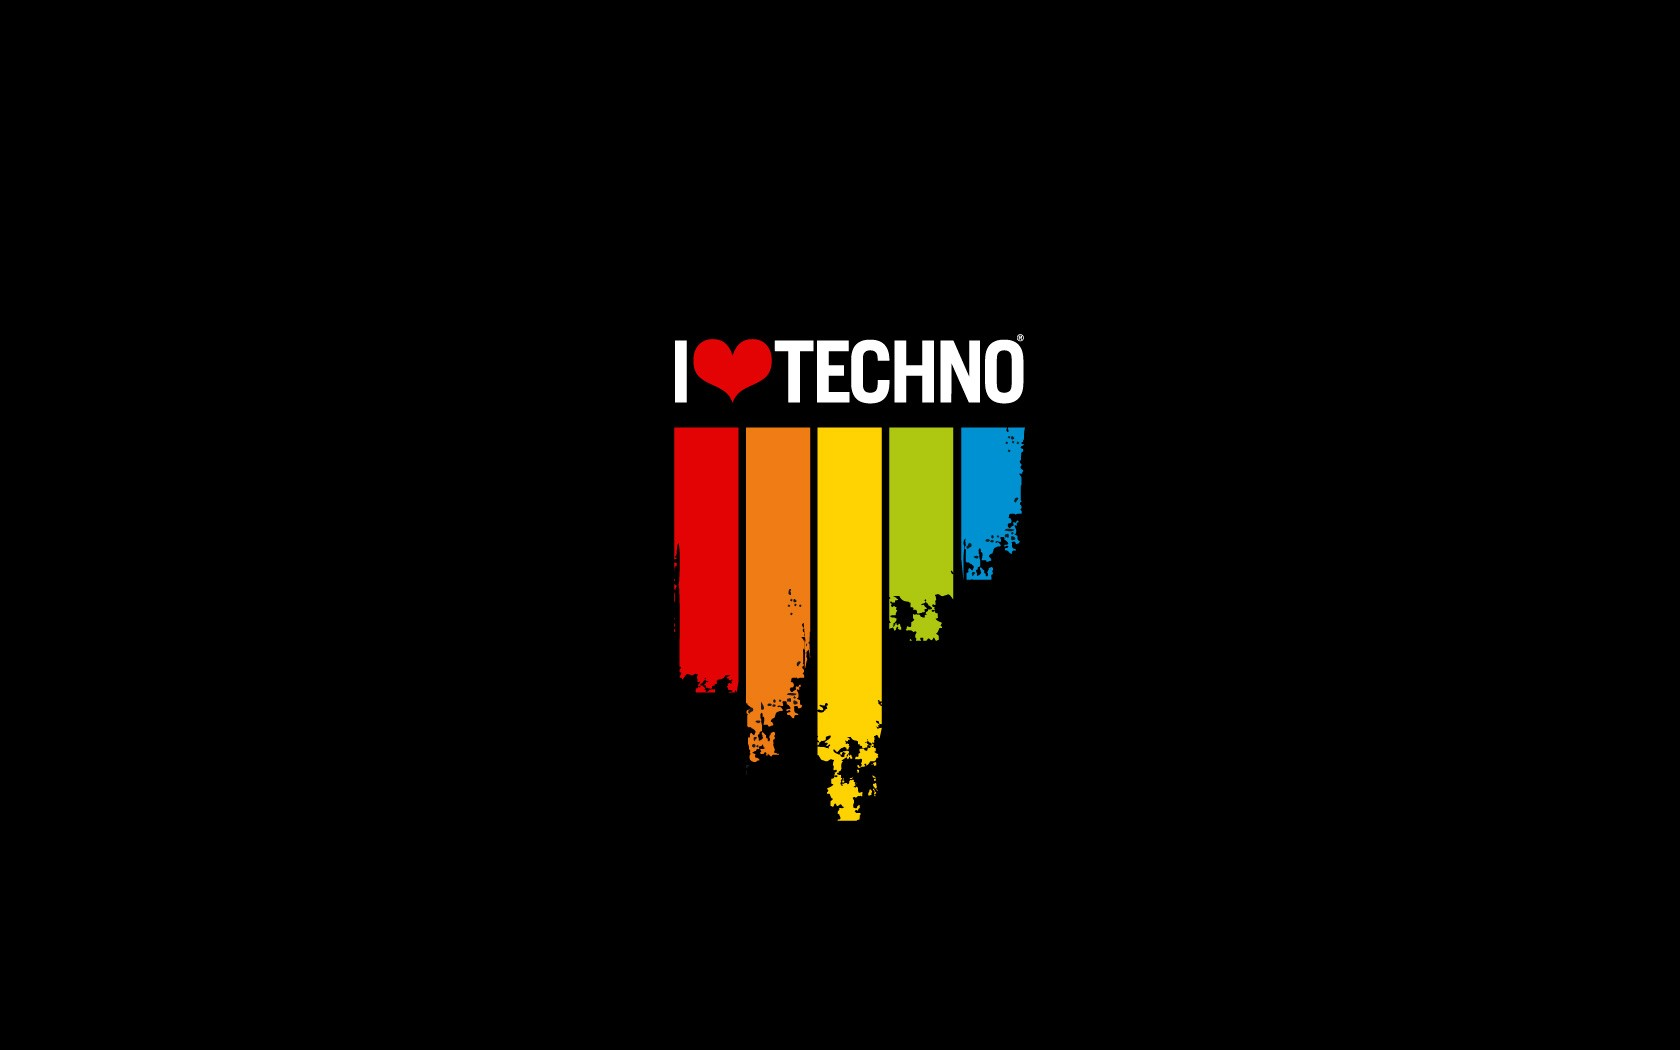 Techno Quotes. QuotesGram